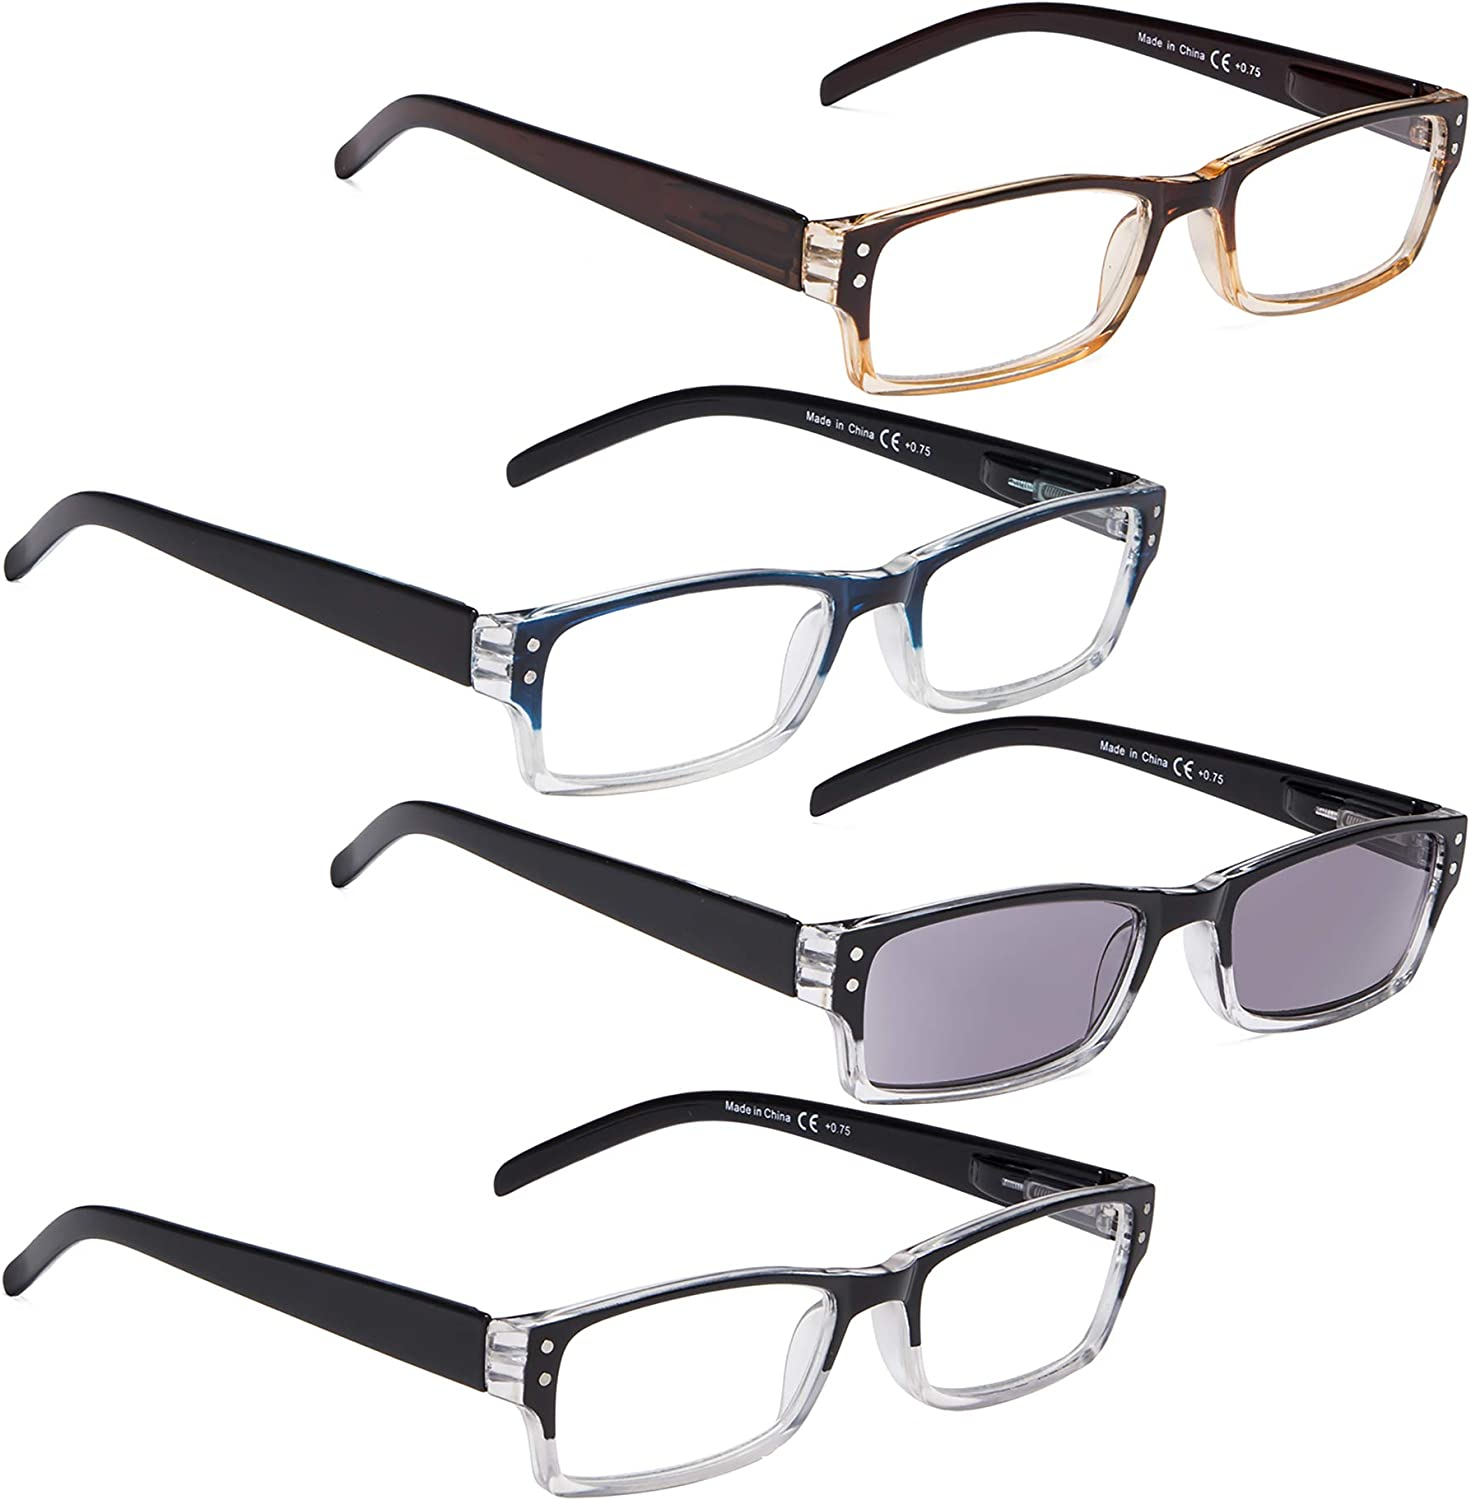 READING 70% OFF Outlet GLASSES 4 pack Include Sunshine Popularity Readers Women and for Me